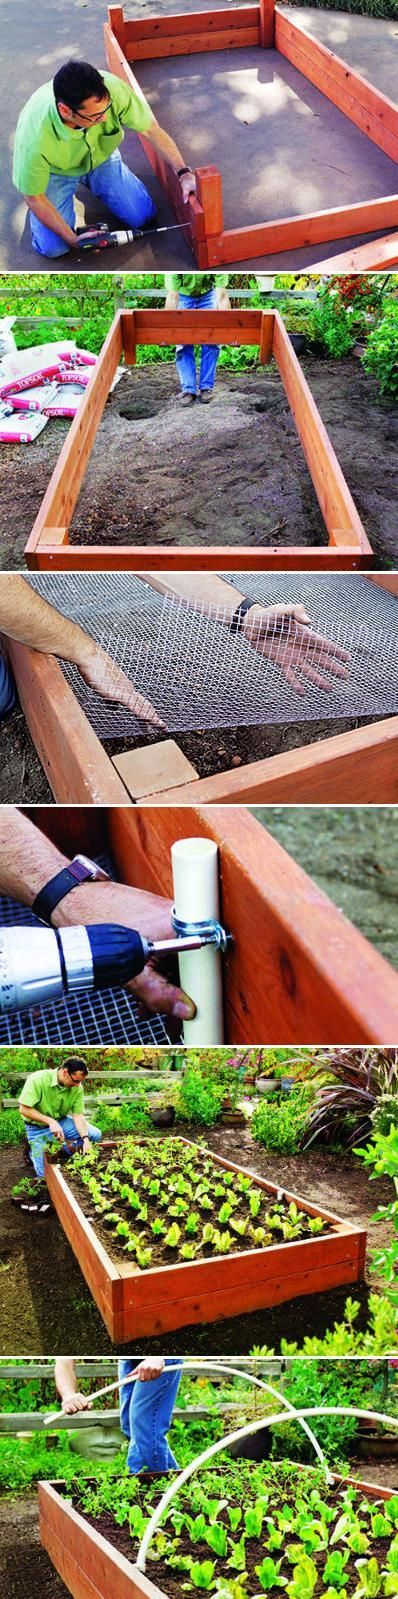 Alternative Gardning: raised beds for gardening